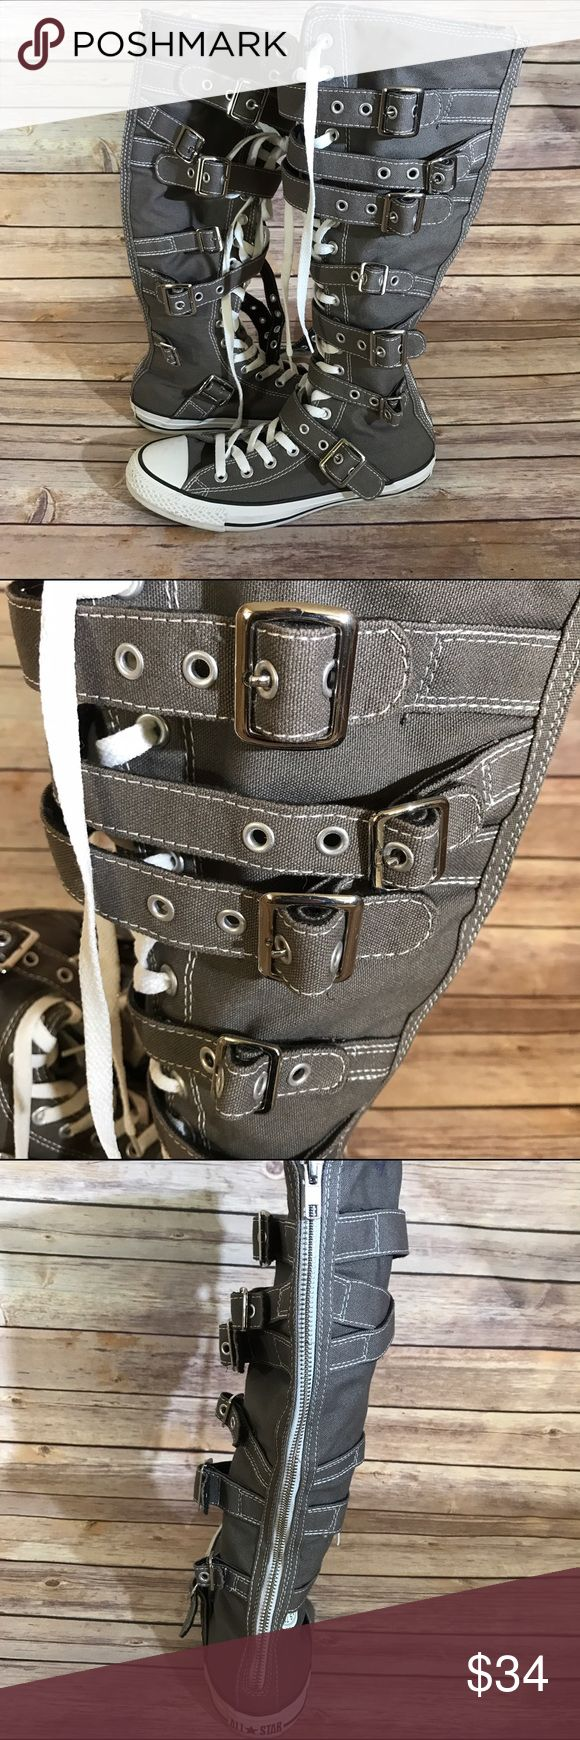 Lace Up Knee High Converse • GREAT CONDITION! • Minor Stains on Laces • Knee High • Sz- 6.5 • Zippers Work Great!   Please review all photos to know exactly what you are purchasing. If I forgot anything, just tag me and ask!   No ️️ No Ⓜ️ No Trades Converse Shoes Sneakers